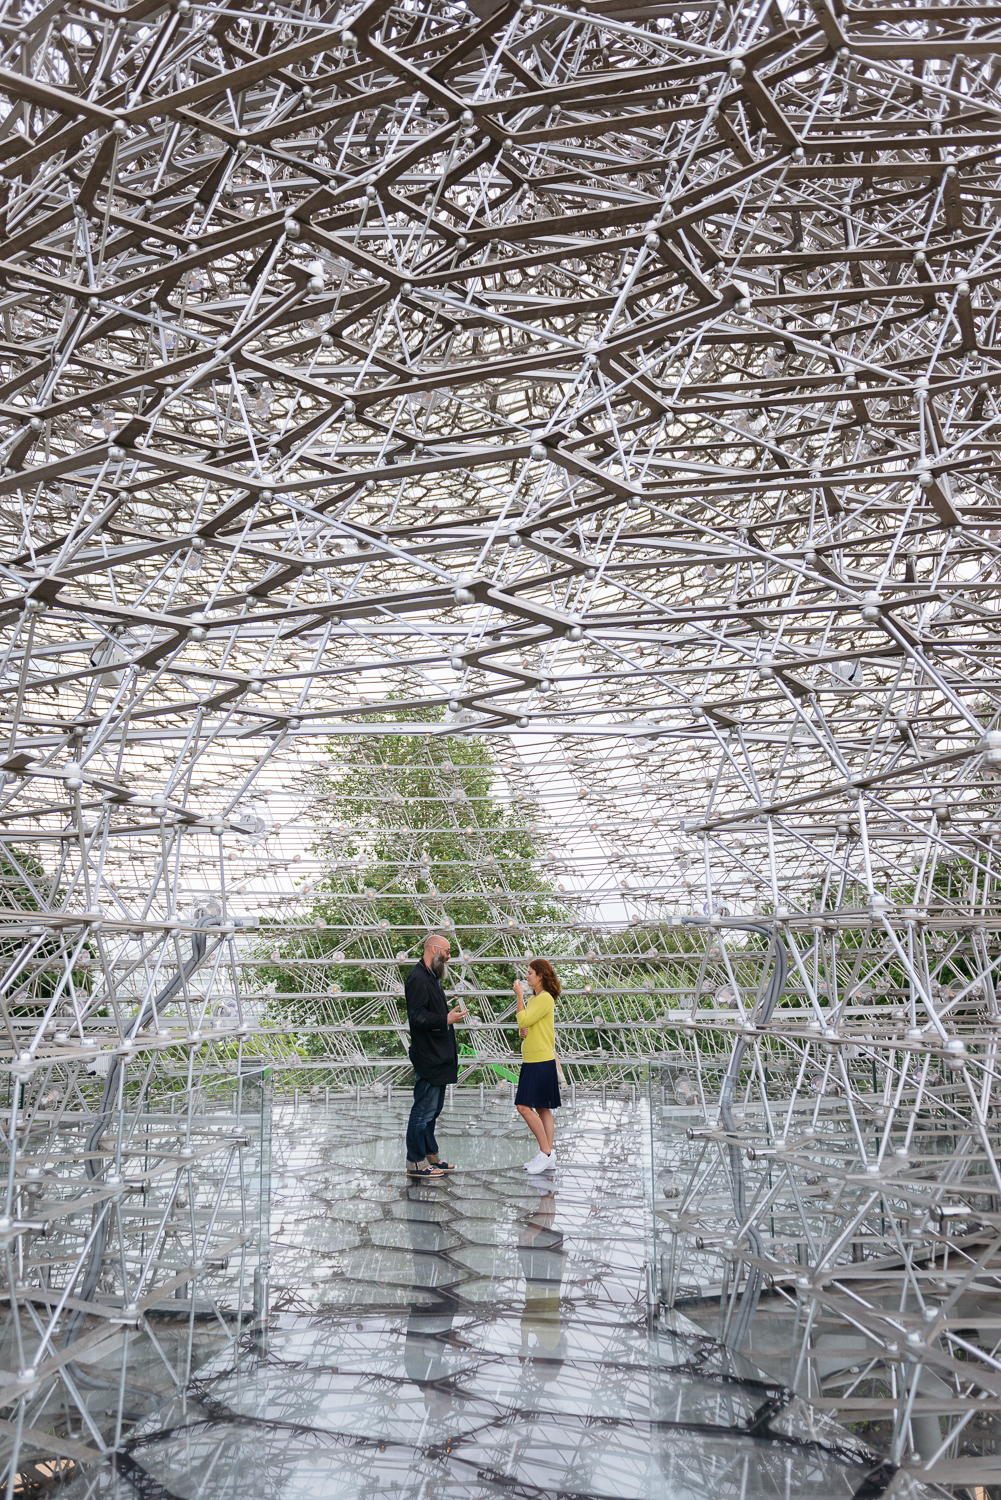 The Hive at Kew. Photograph by Dacian Groza